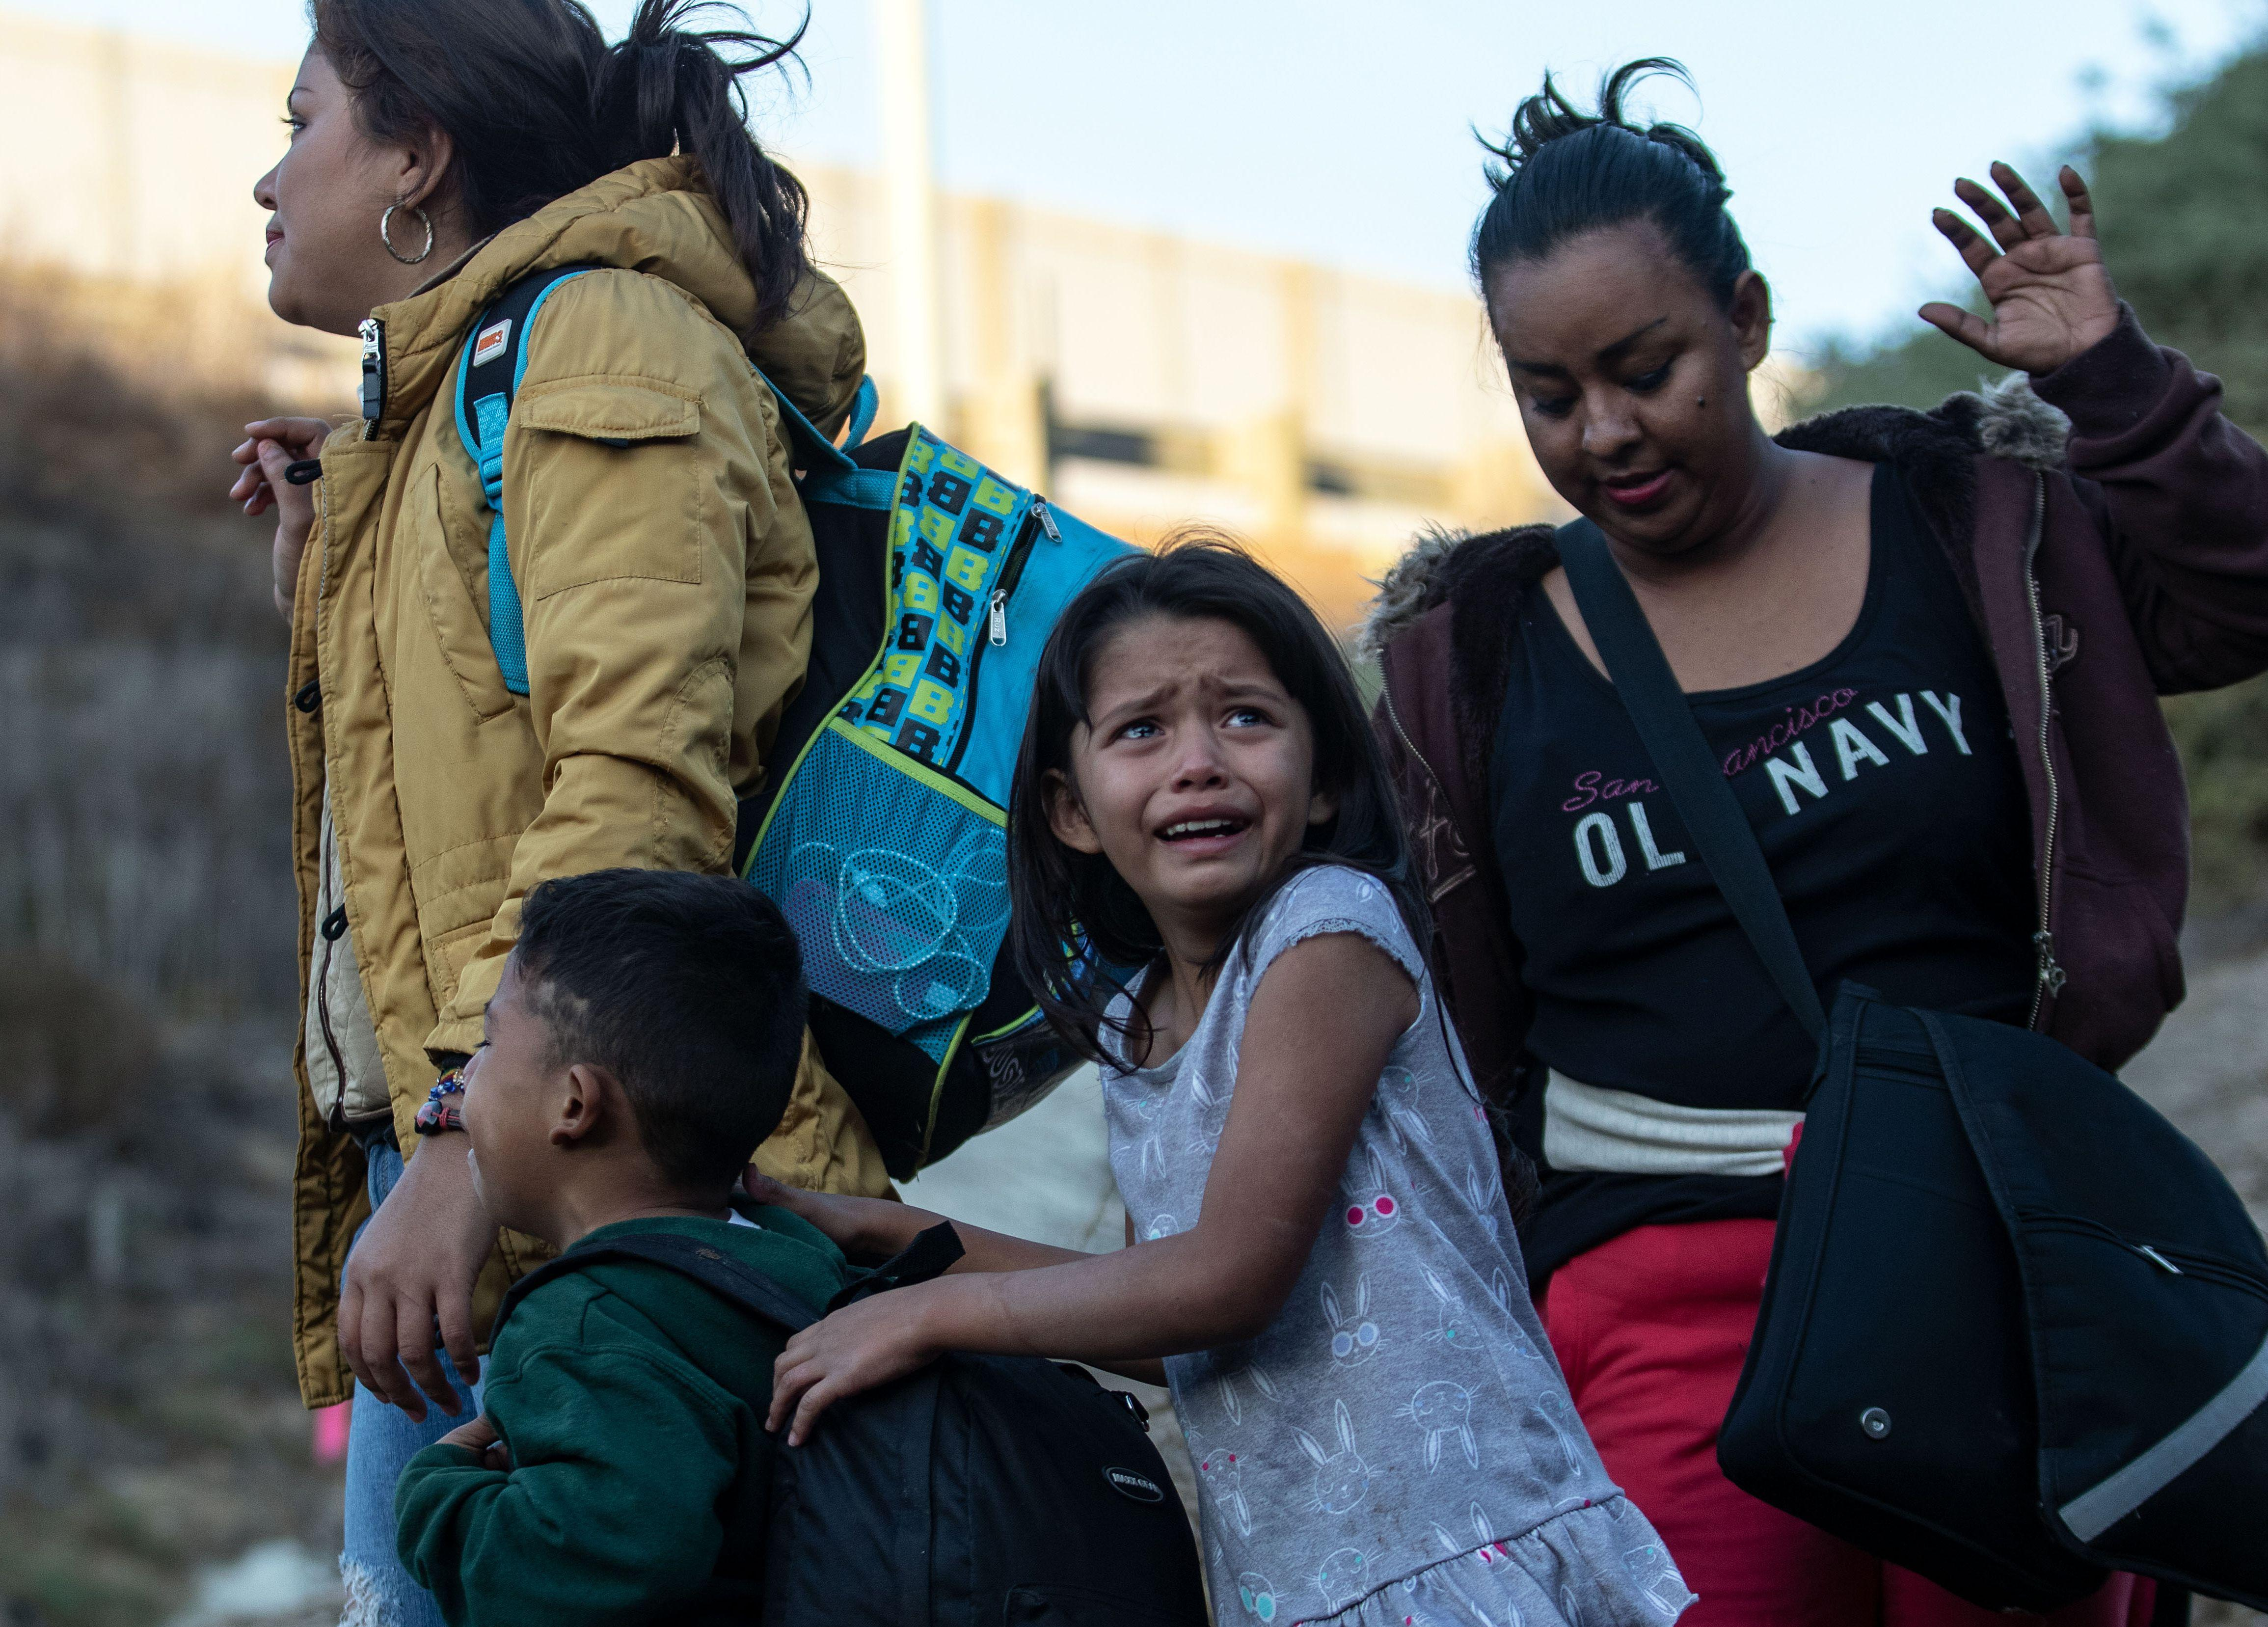 family separation at the border